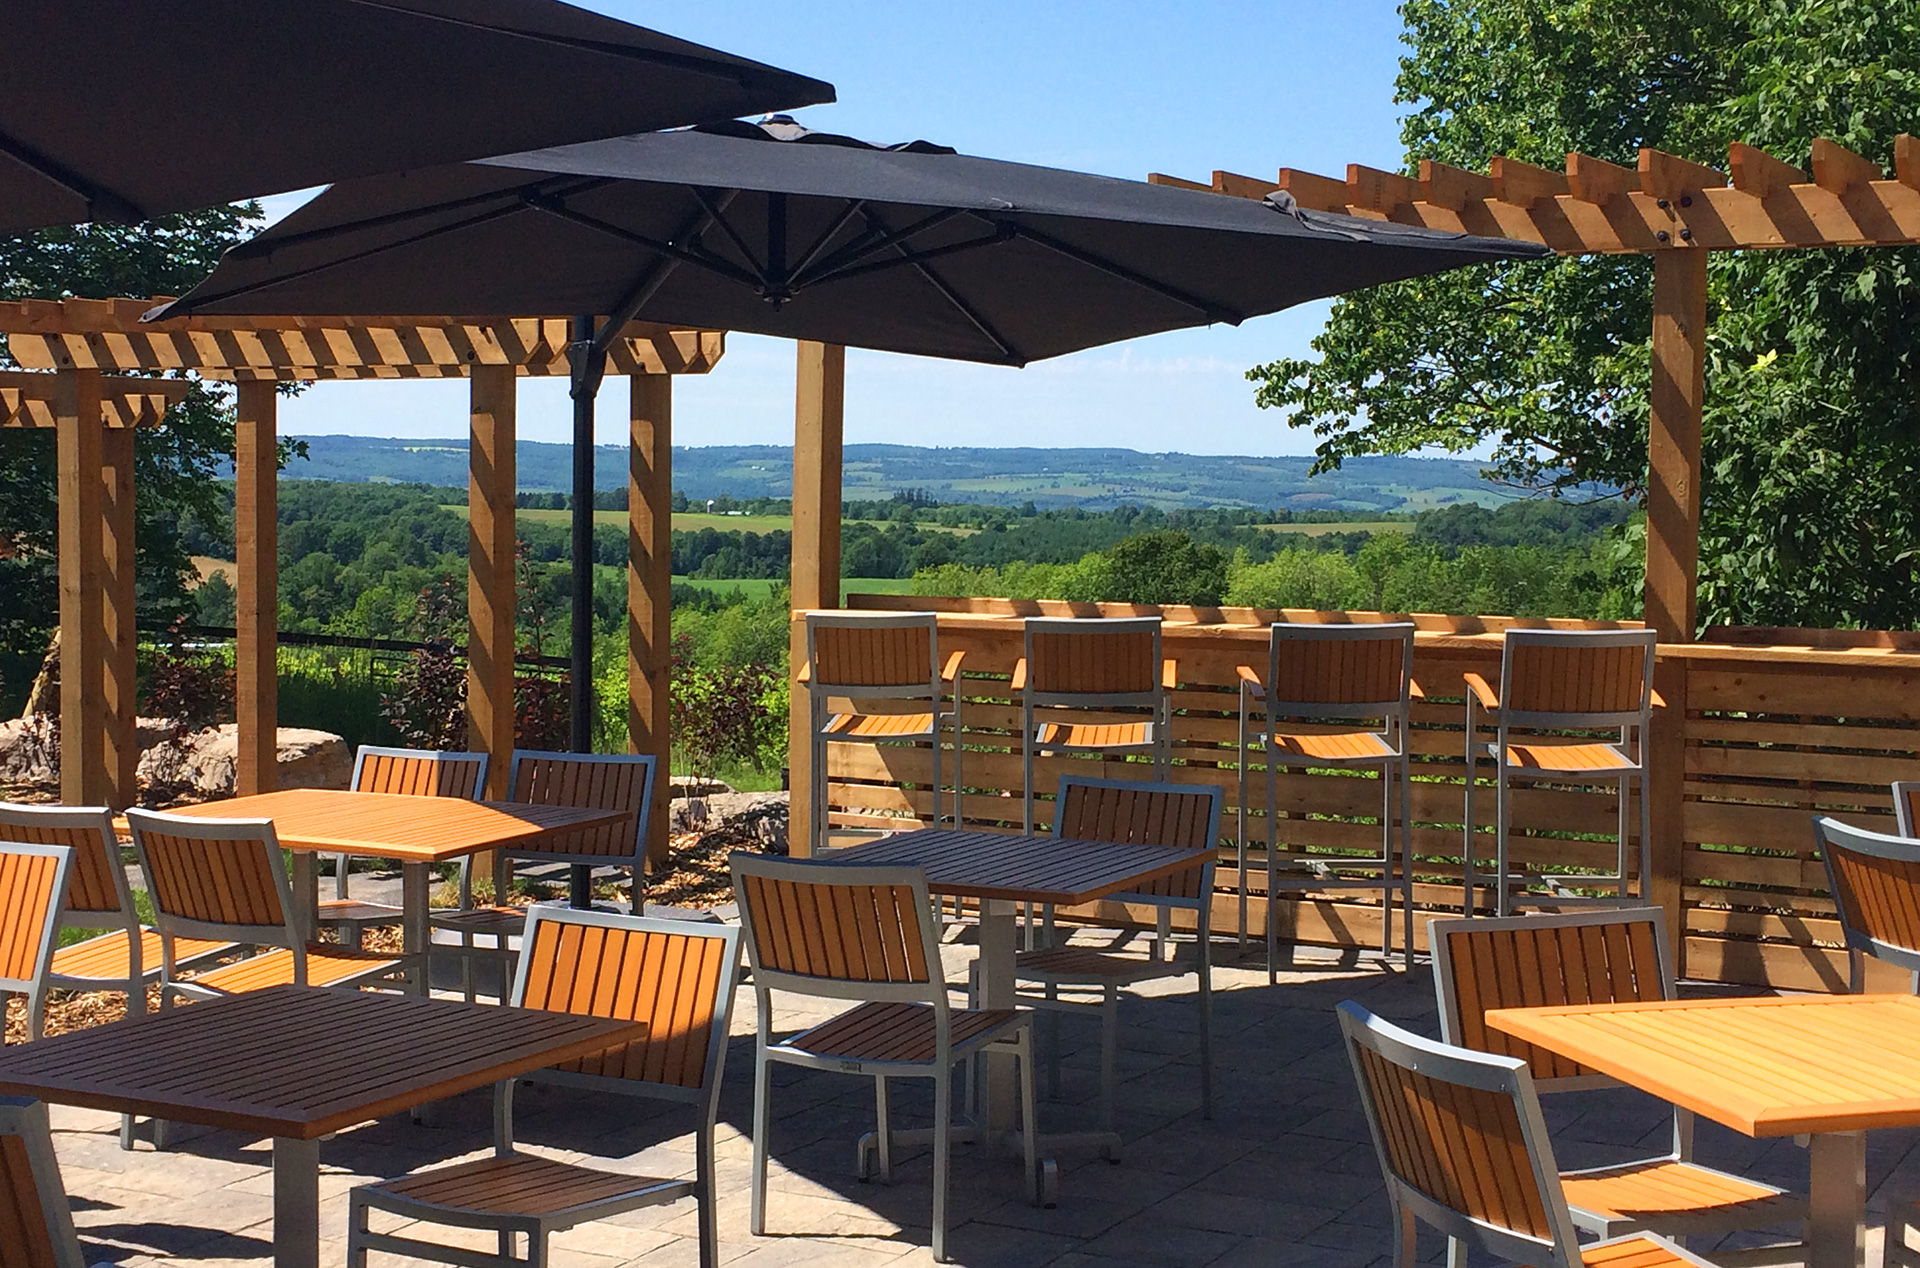 The Roost Wine Co. Patio